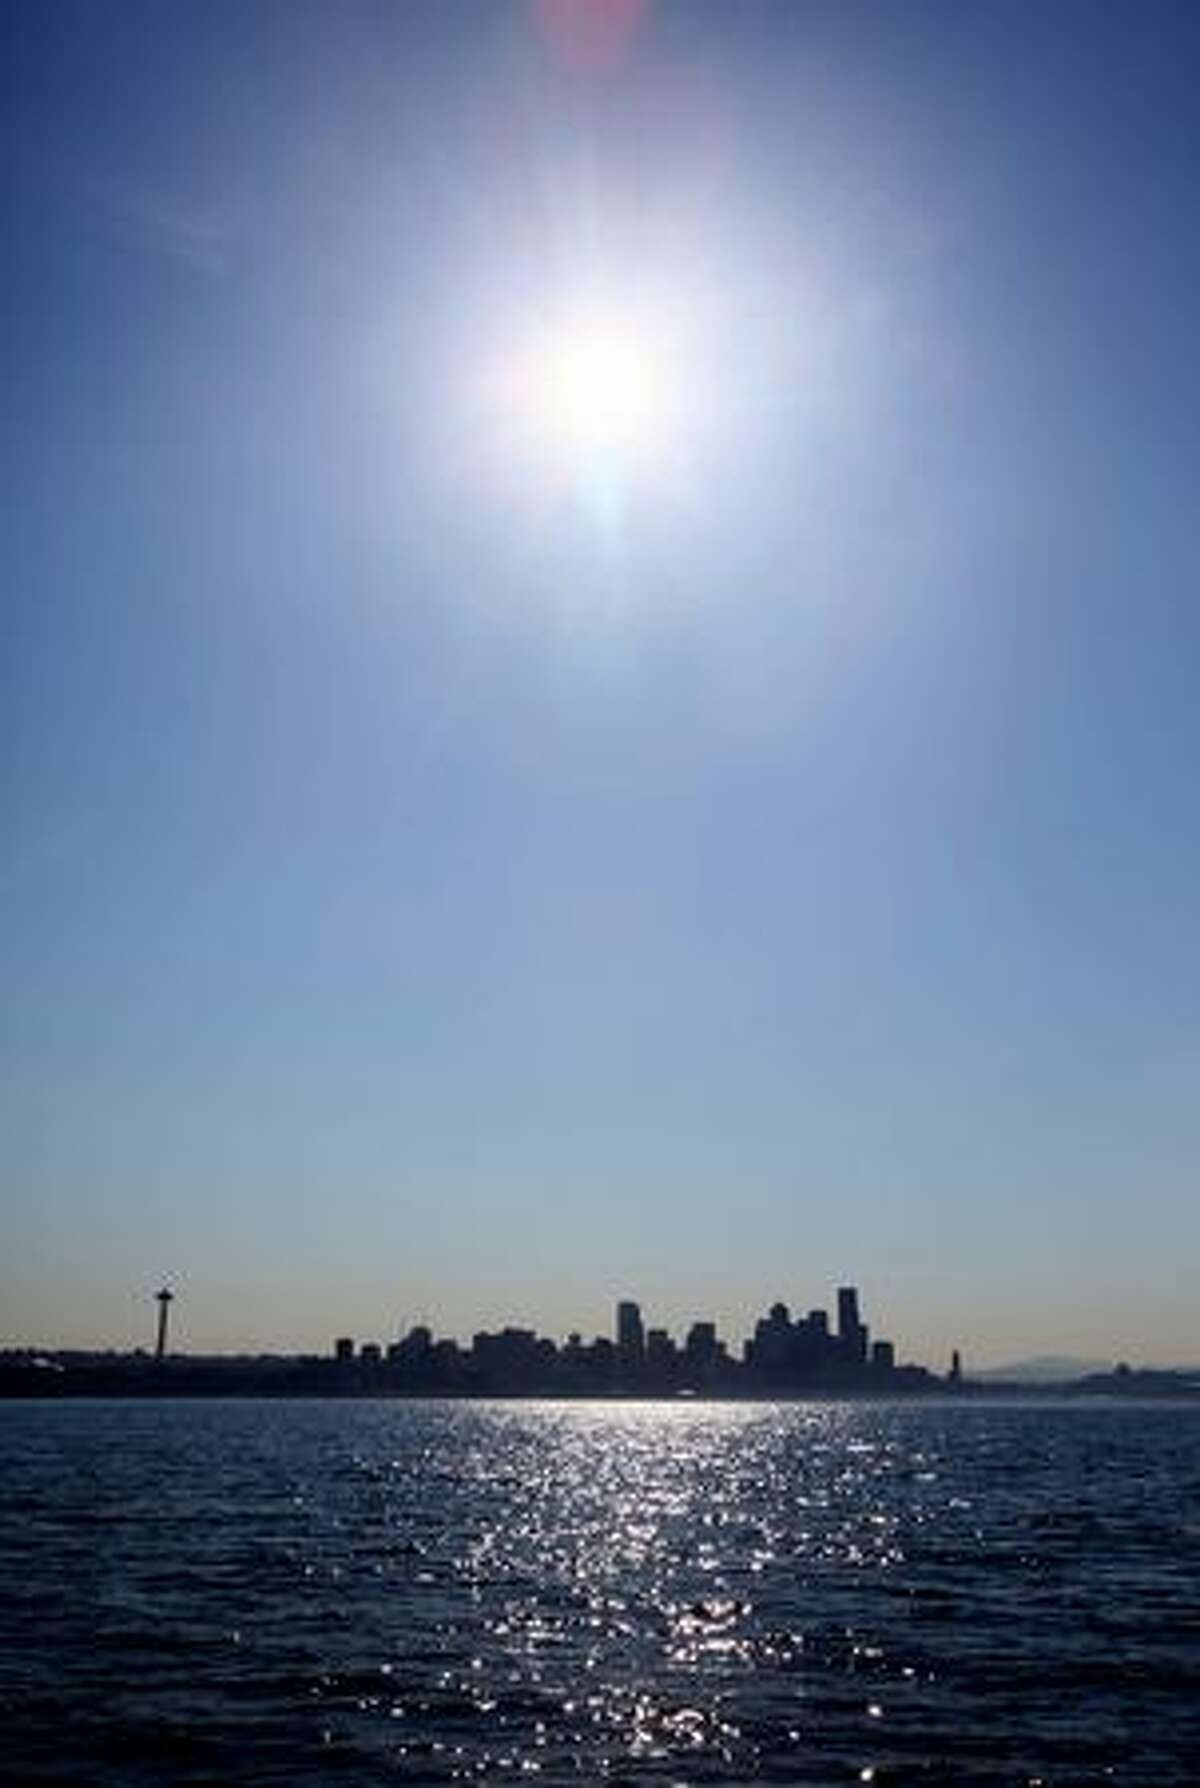 The sun beats down on Seattle on Monday as seen from Elliott Bay.